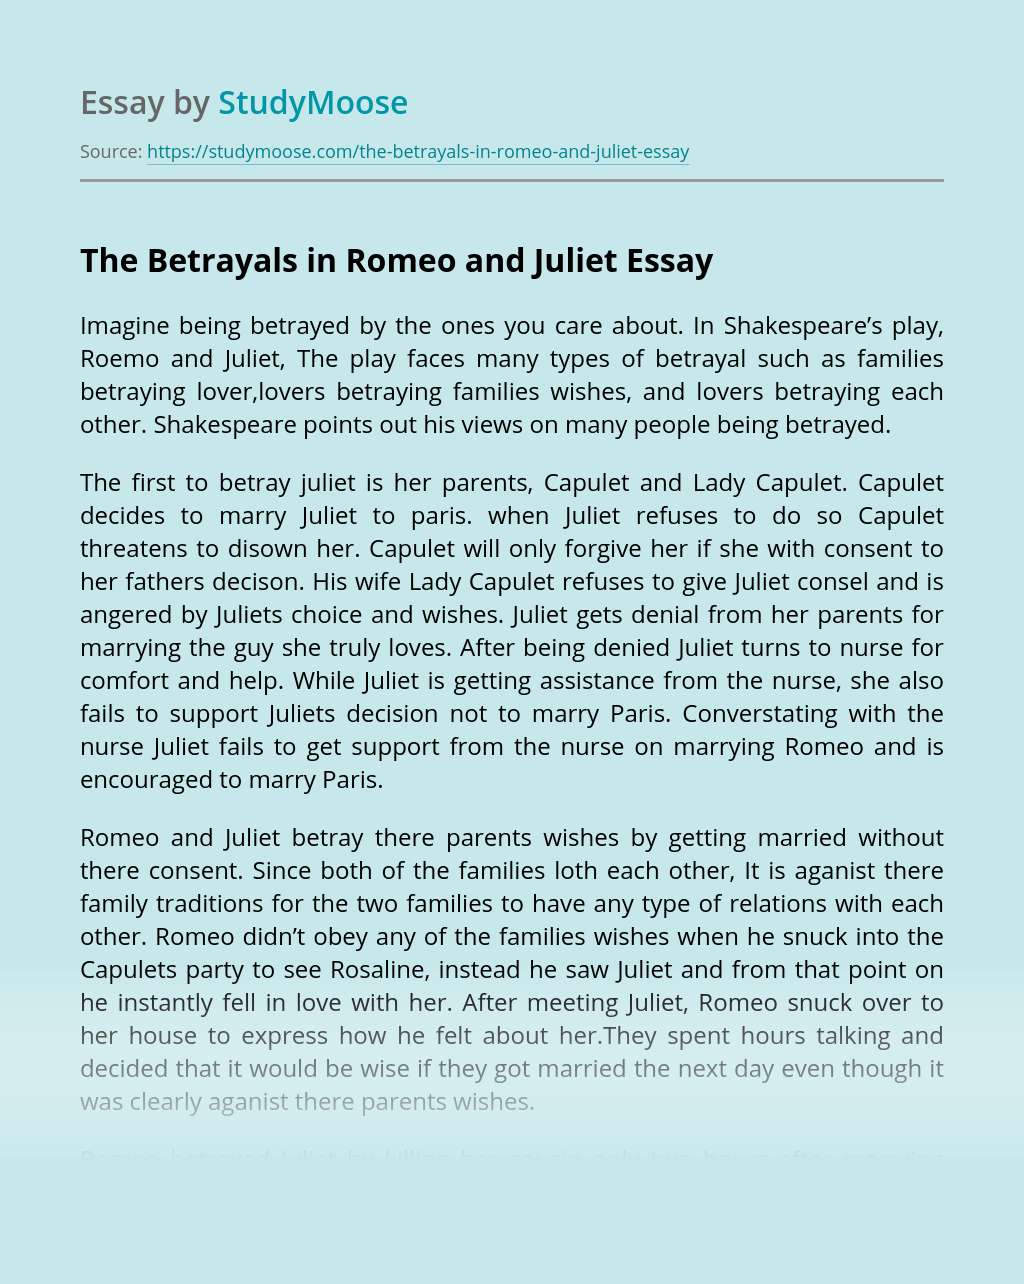 The Betrayals in Romeo and Juliet